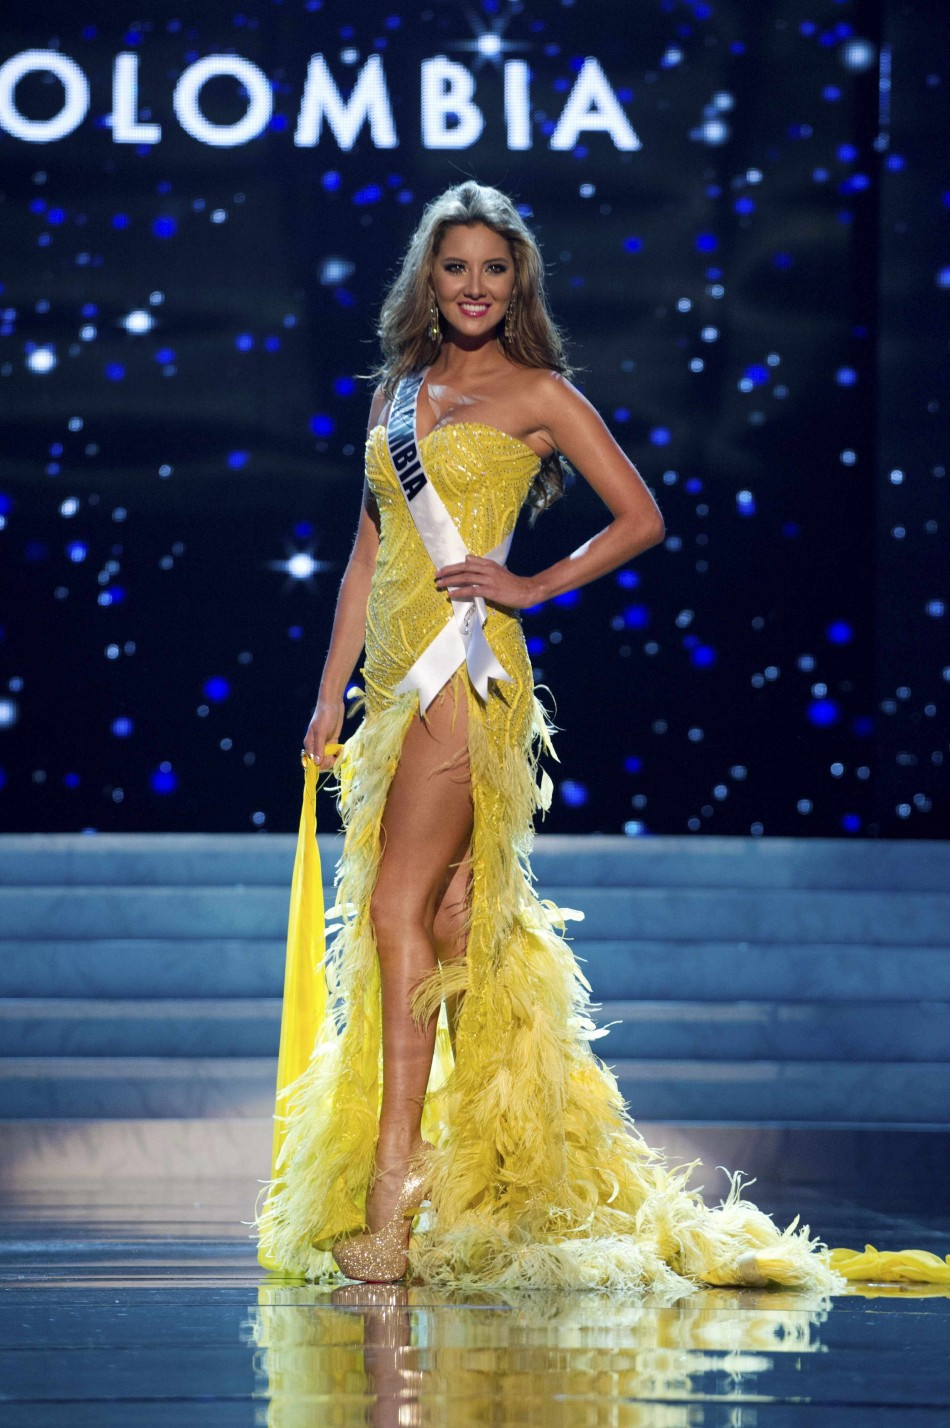 Miss Colombia 2012 Vasquez competes during the 2012 Miss Universe Presentation Show in Las Vegas